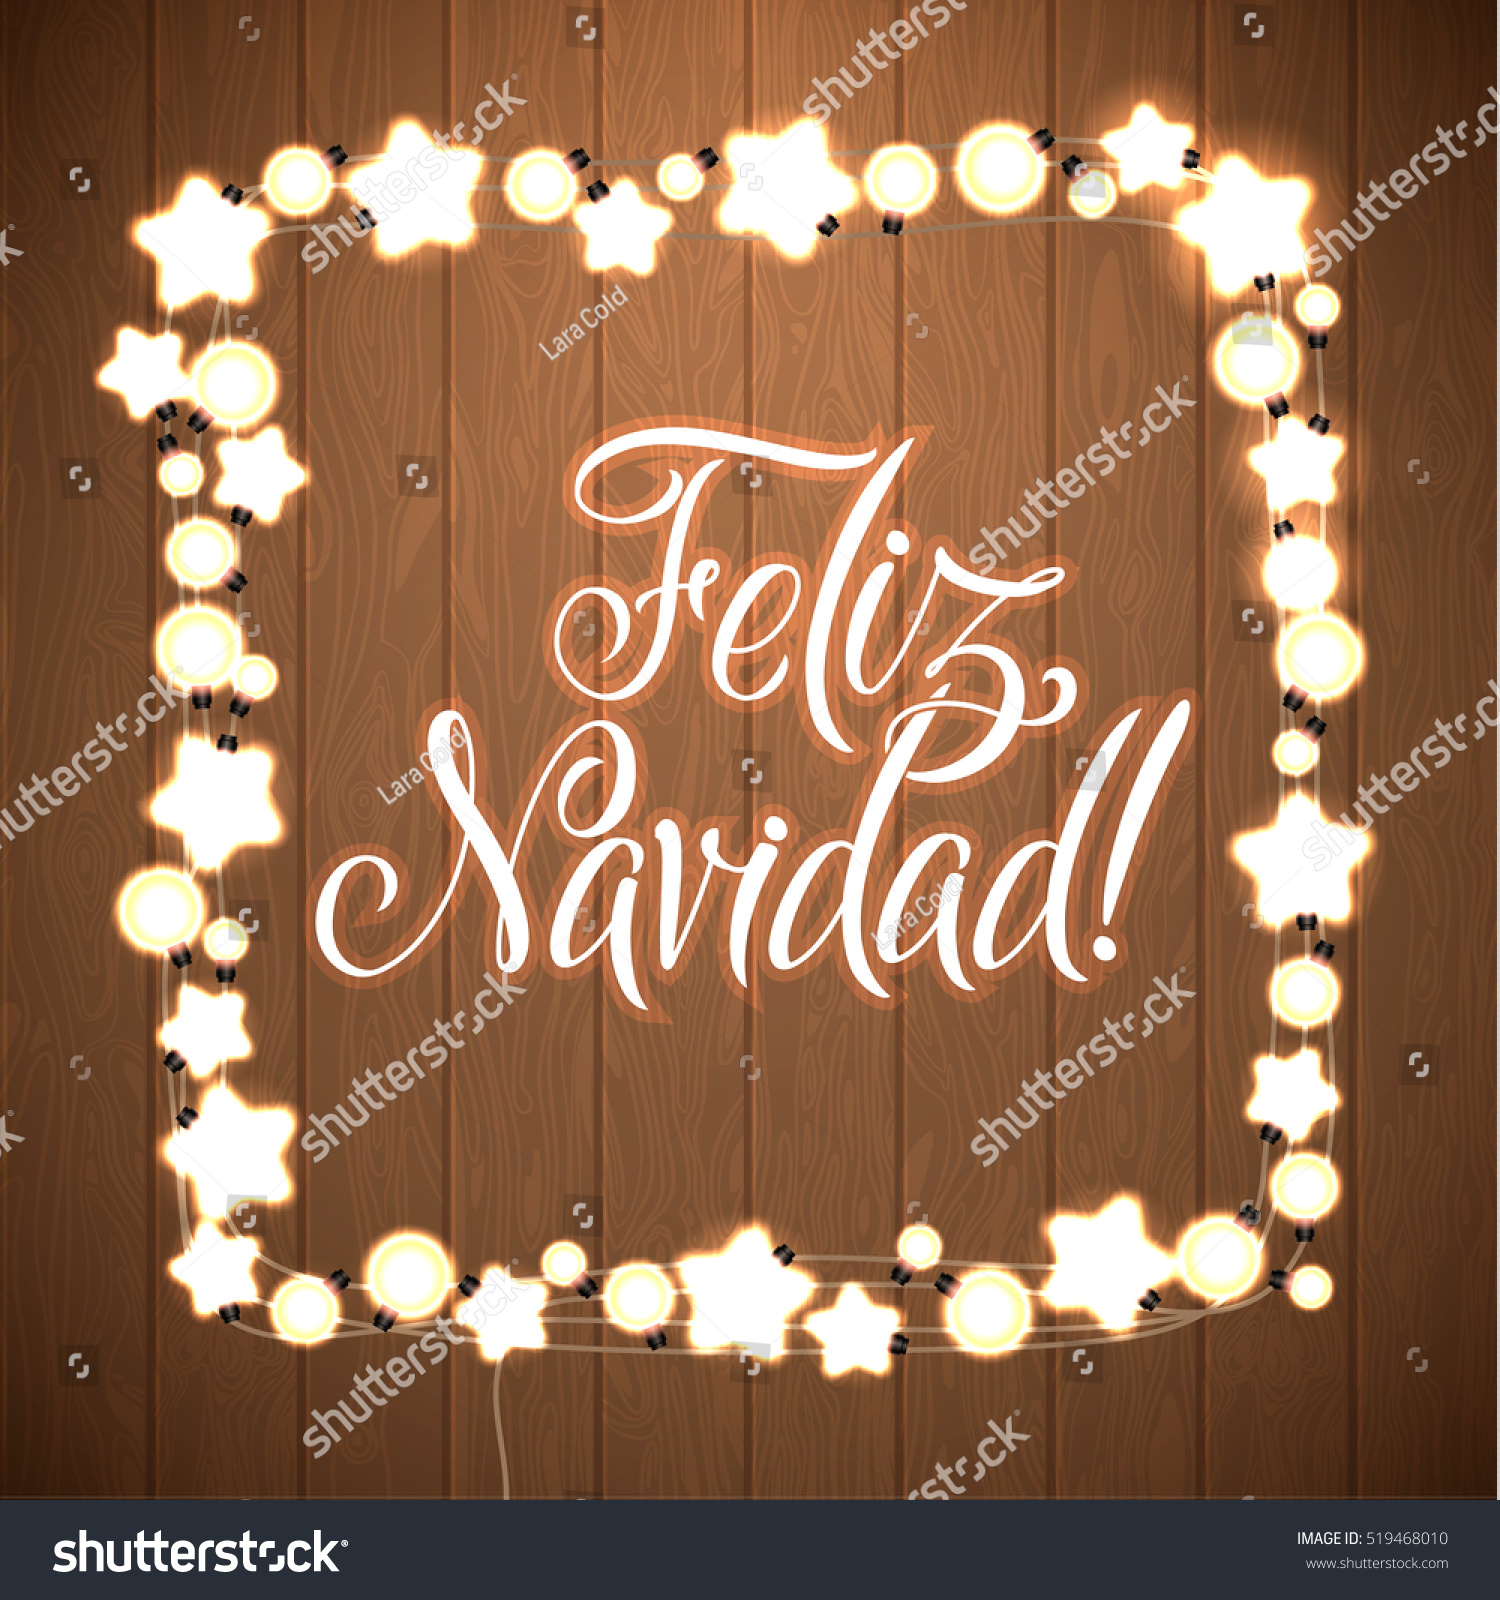 how do i say merry christmas in spanish curtain design lajada - How To Say Christmas In Spanish